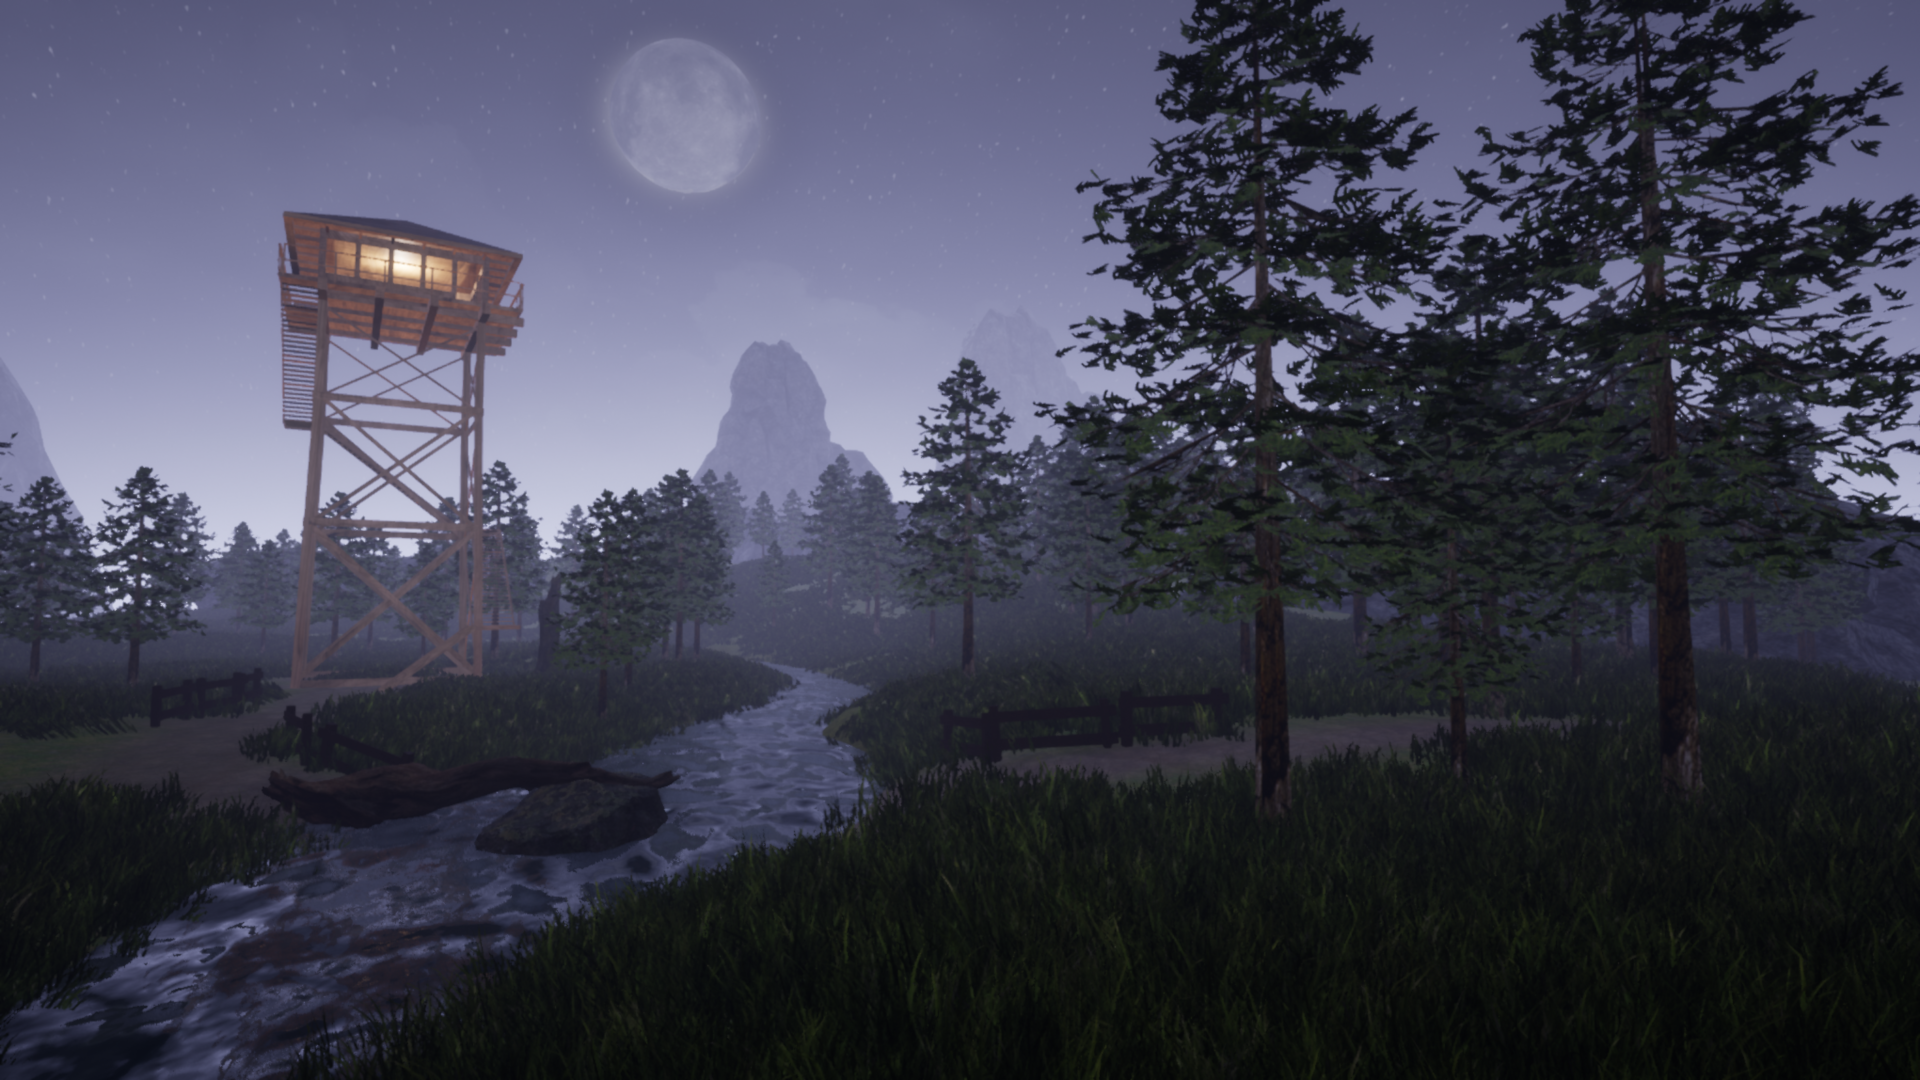 1401207494_NightsceneinspiredFirewatch.png.17b717595ced71086f975368d27a62ac.png